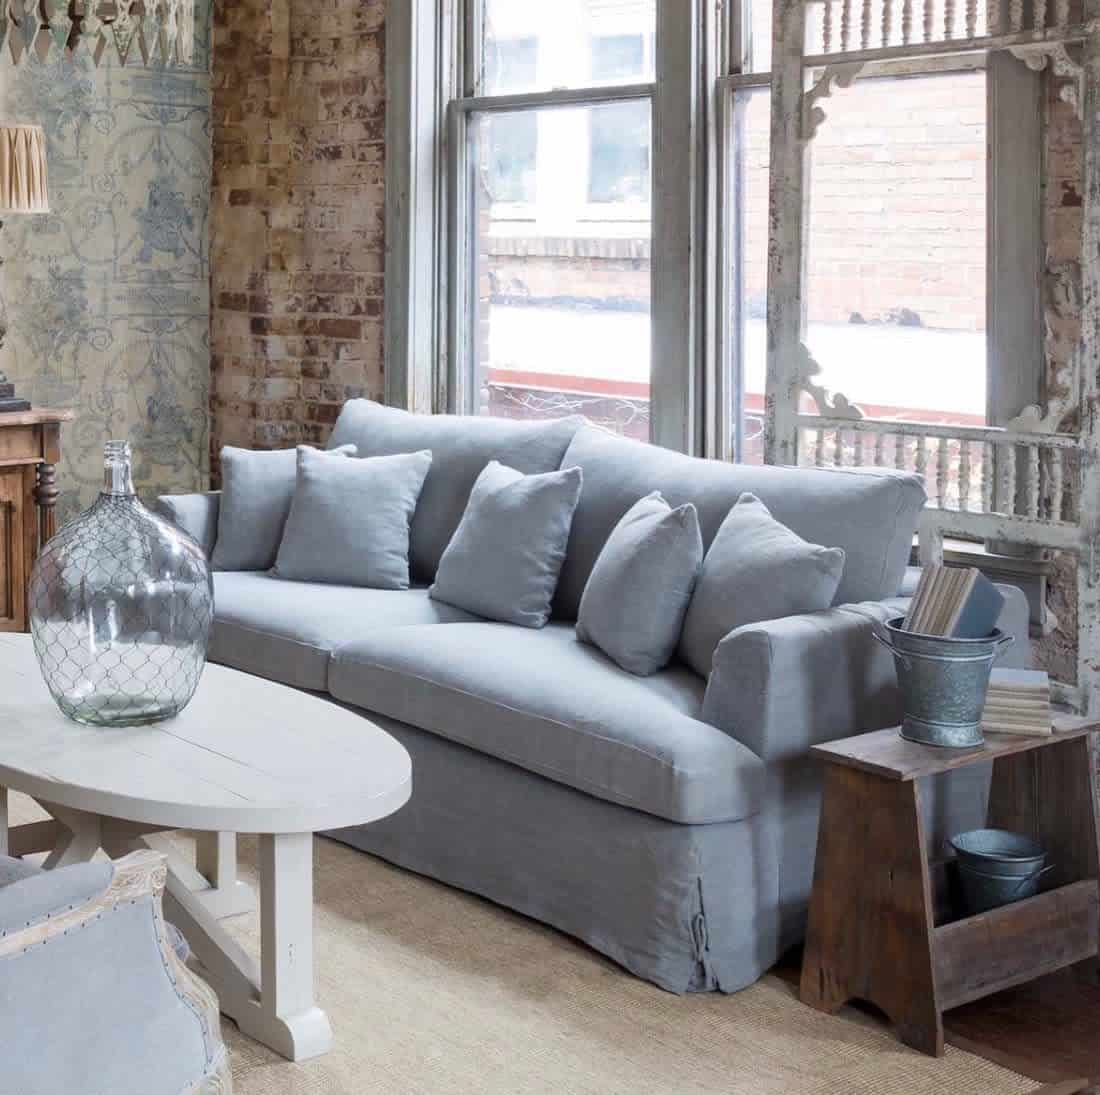 Cozy Sofa Farmhouse Living Room Ideas Gershwinandgertie (2)